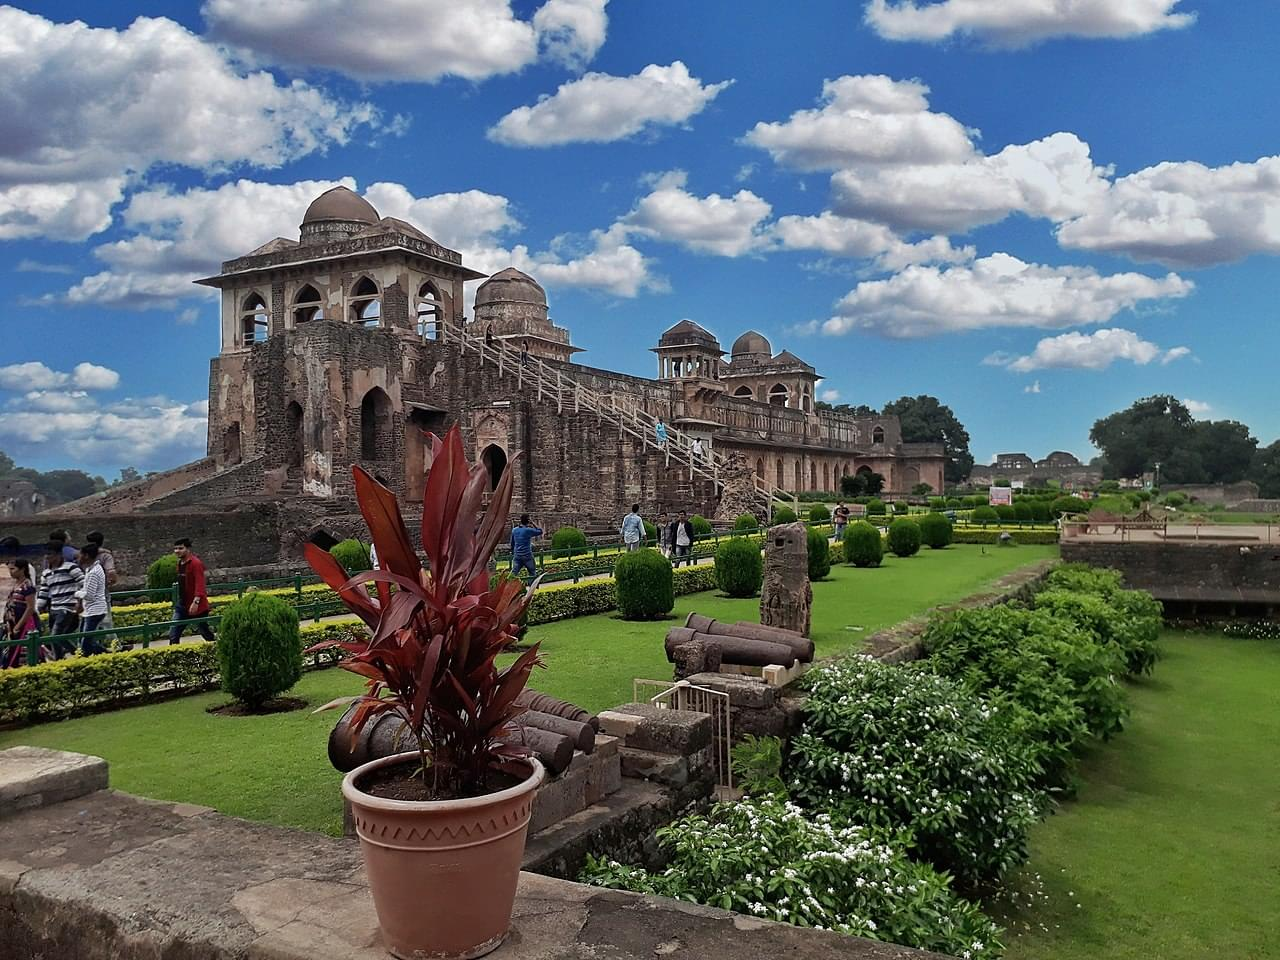 4-Night-5-Days-Indore-and-Mandu-Tour-Package-JustWravel-1597394710-5.jpg